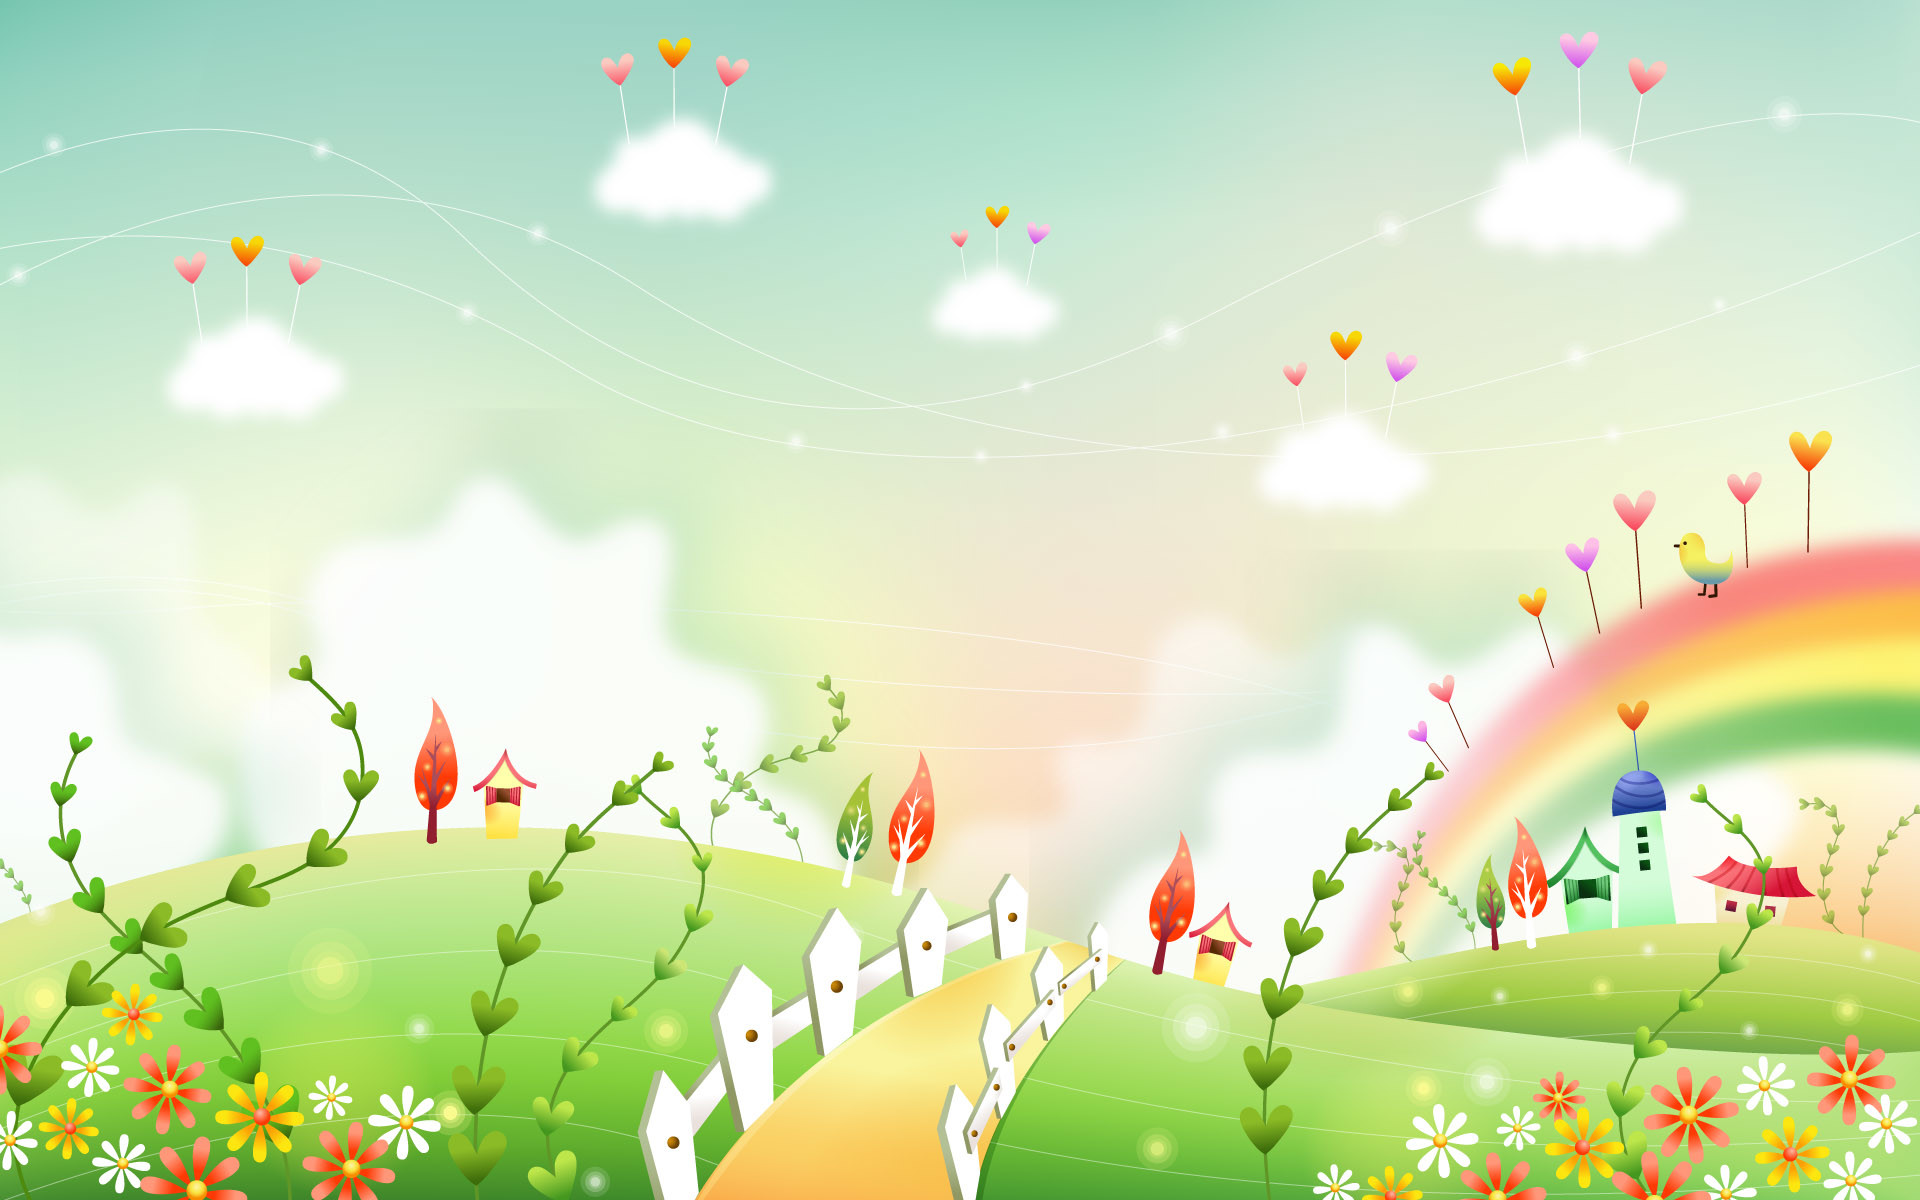 Background Clipart (38+ images).